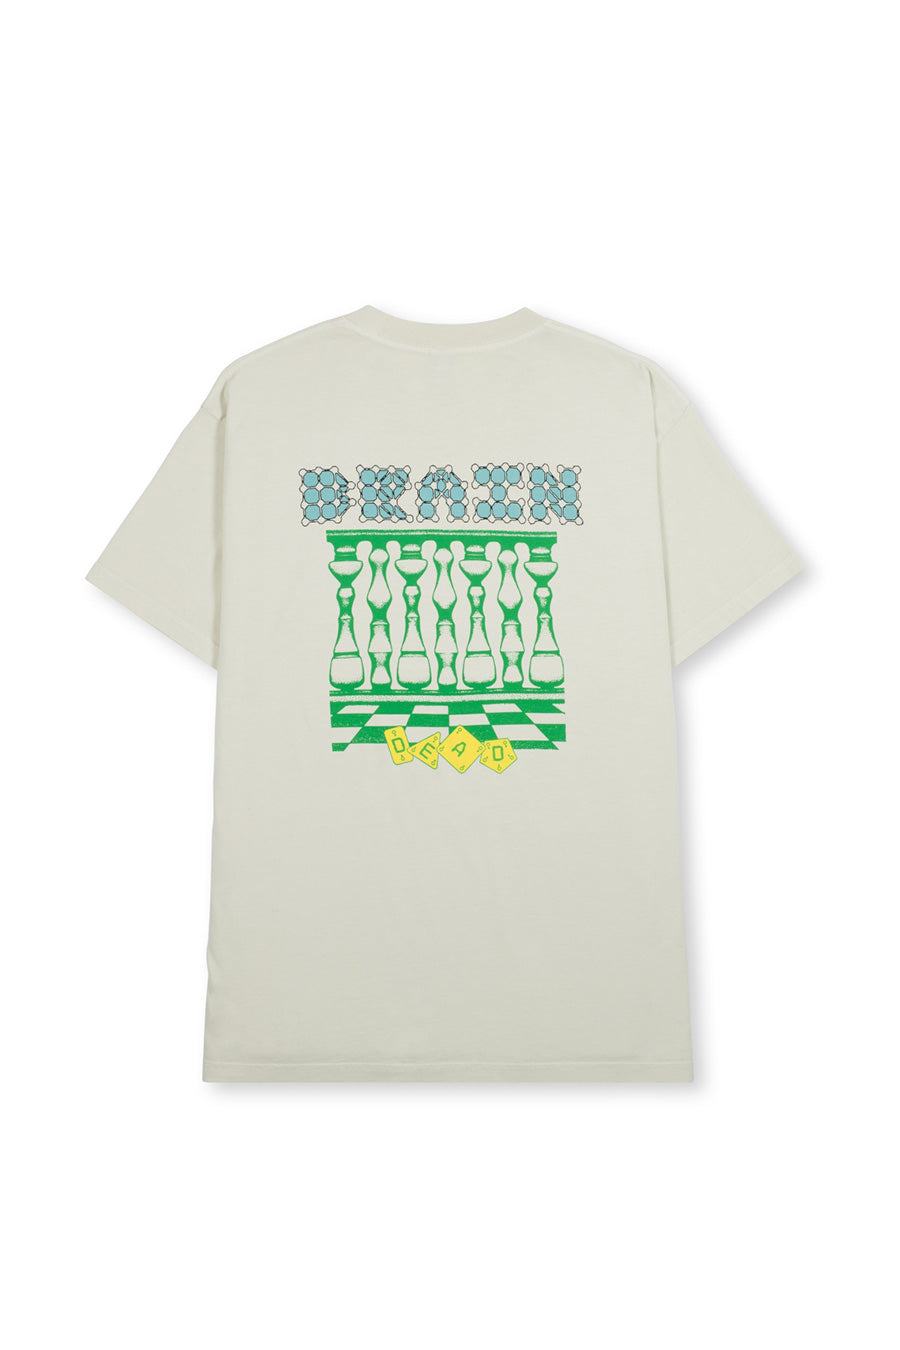 Brain Dead - Tan Audio Science T-Shirt